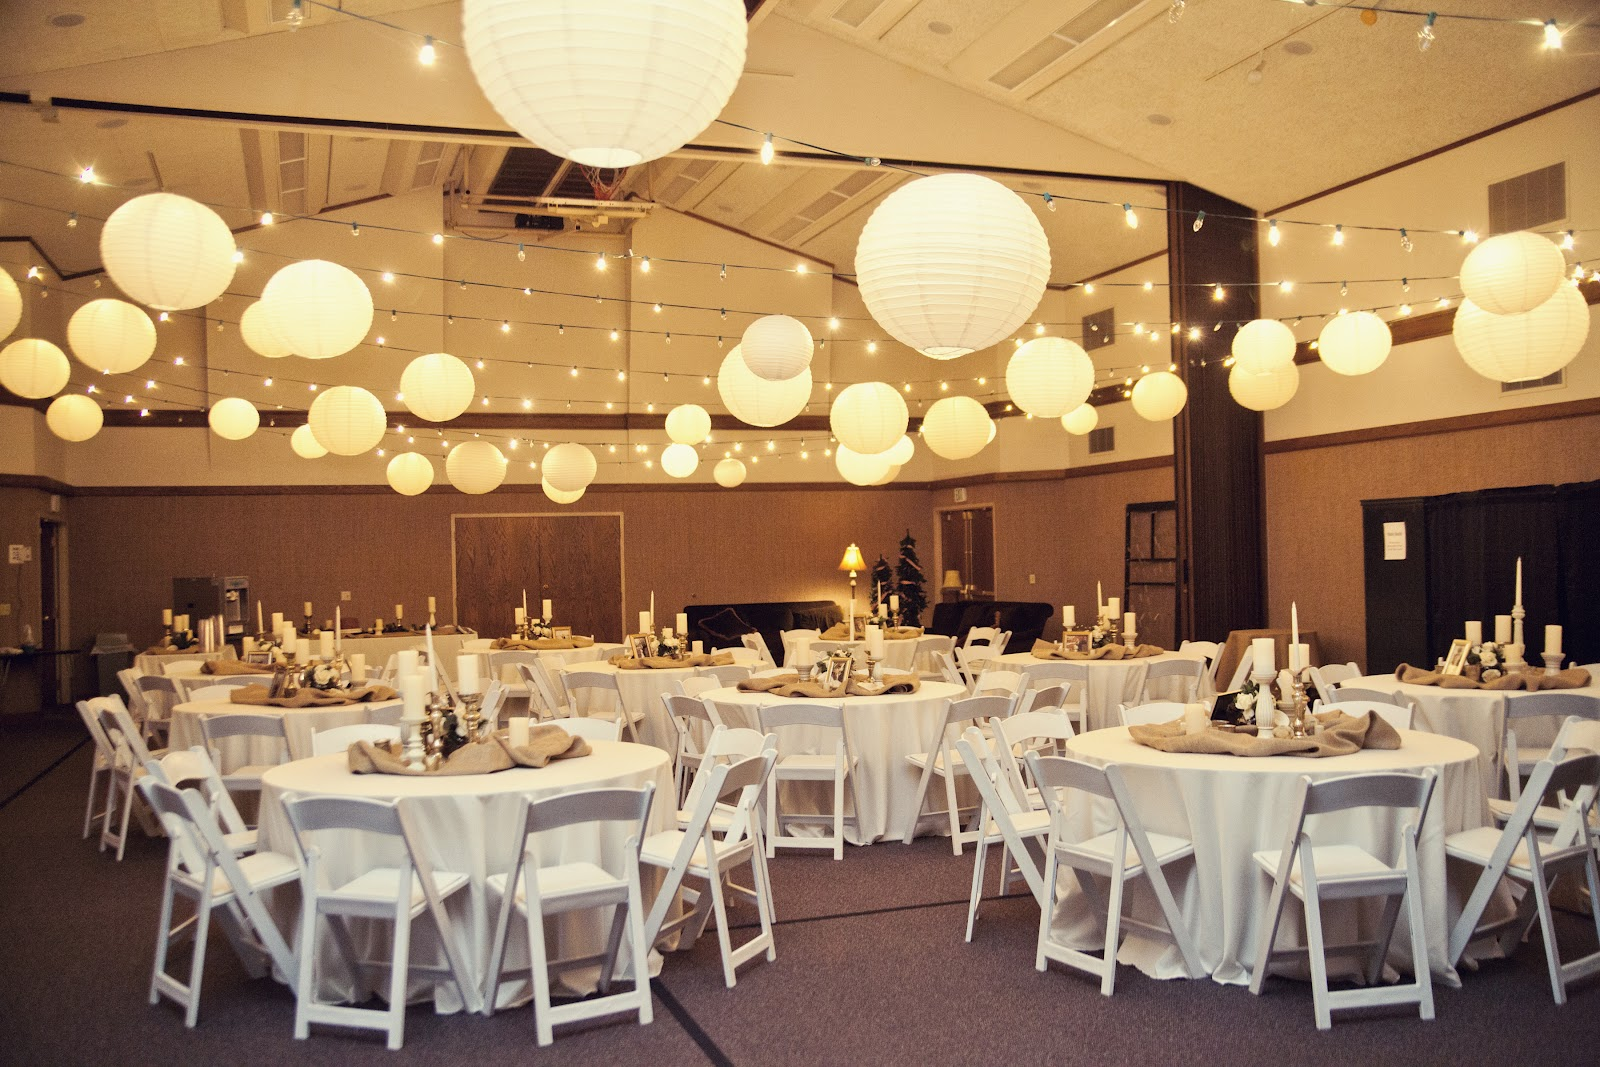 Beehive art salon wedding for Design for hall decoration